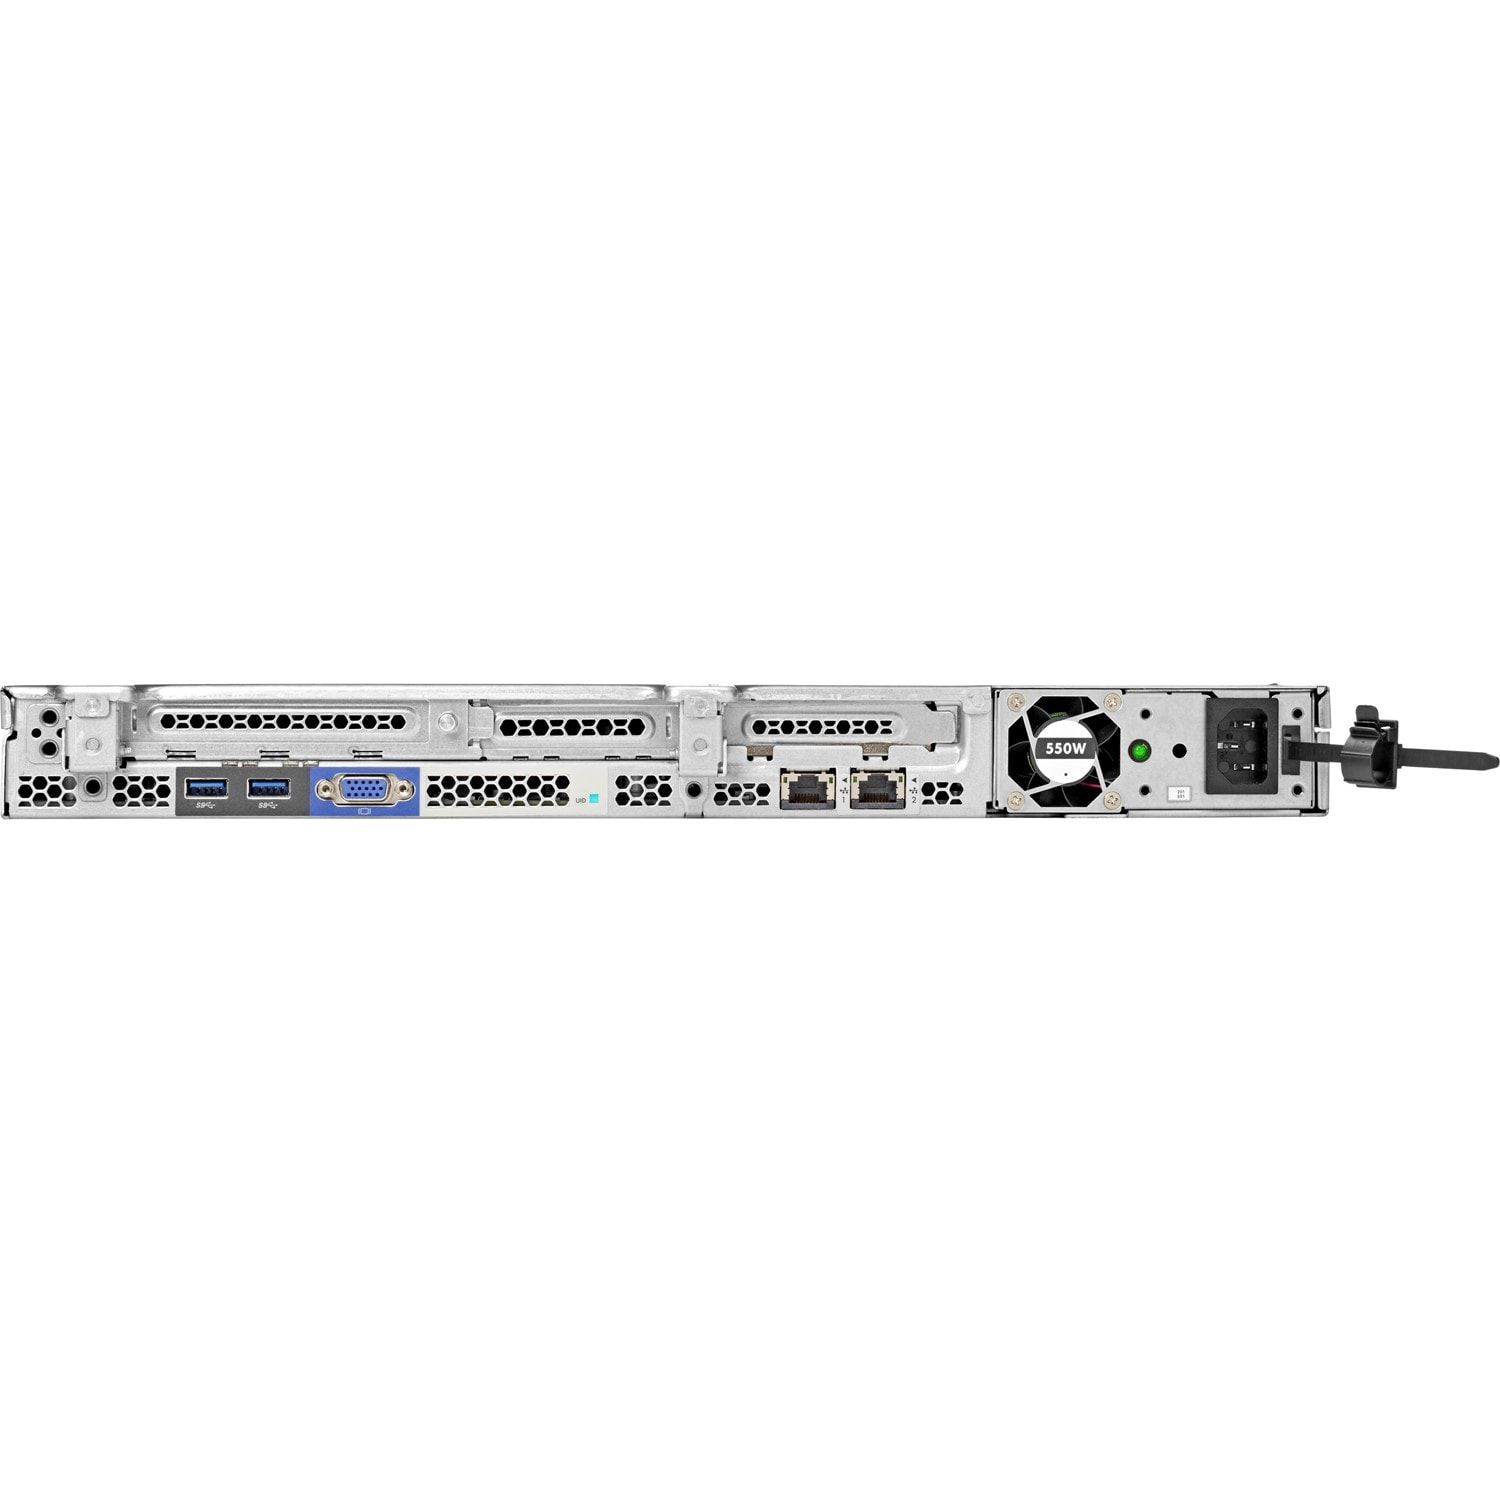 Buy HPE ProLiant DL60 G9 1U Rack Server - 1 x Intel Xeon ...